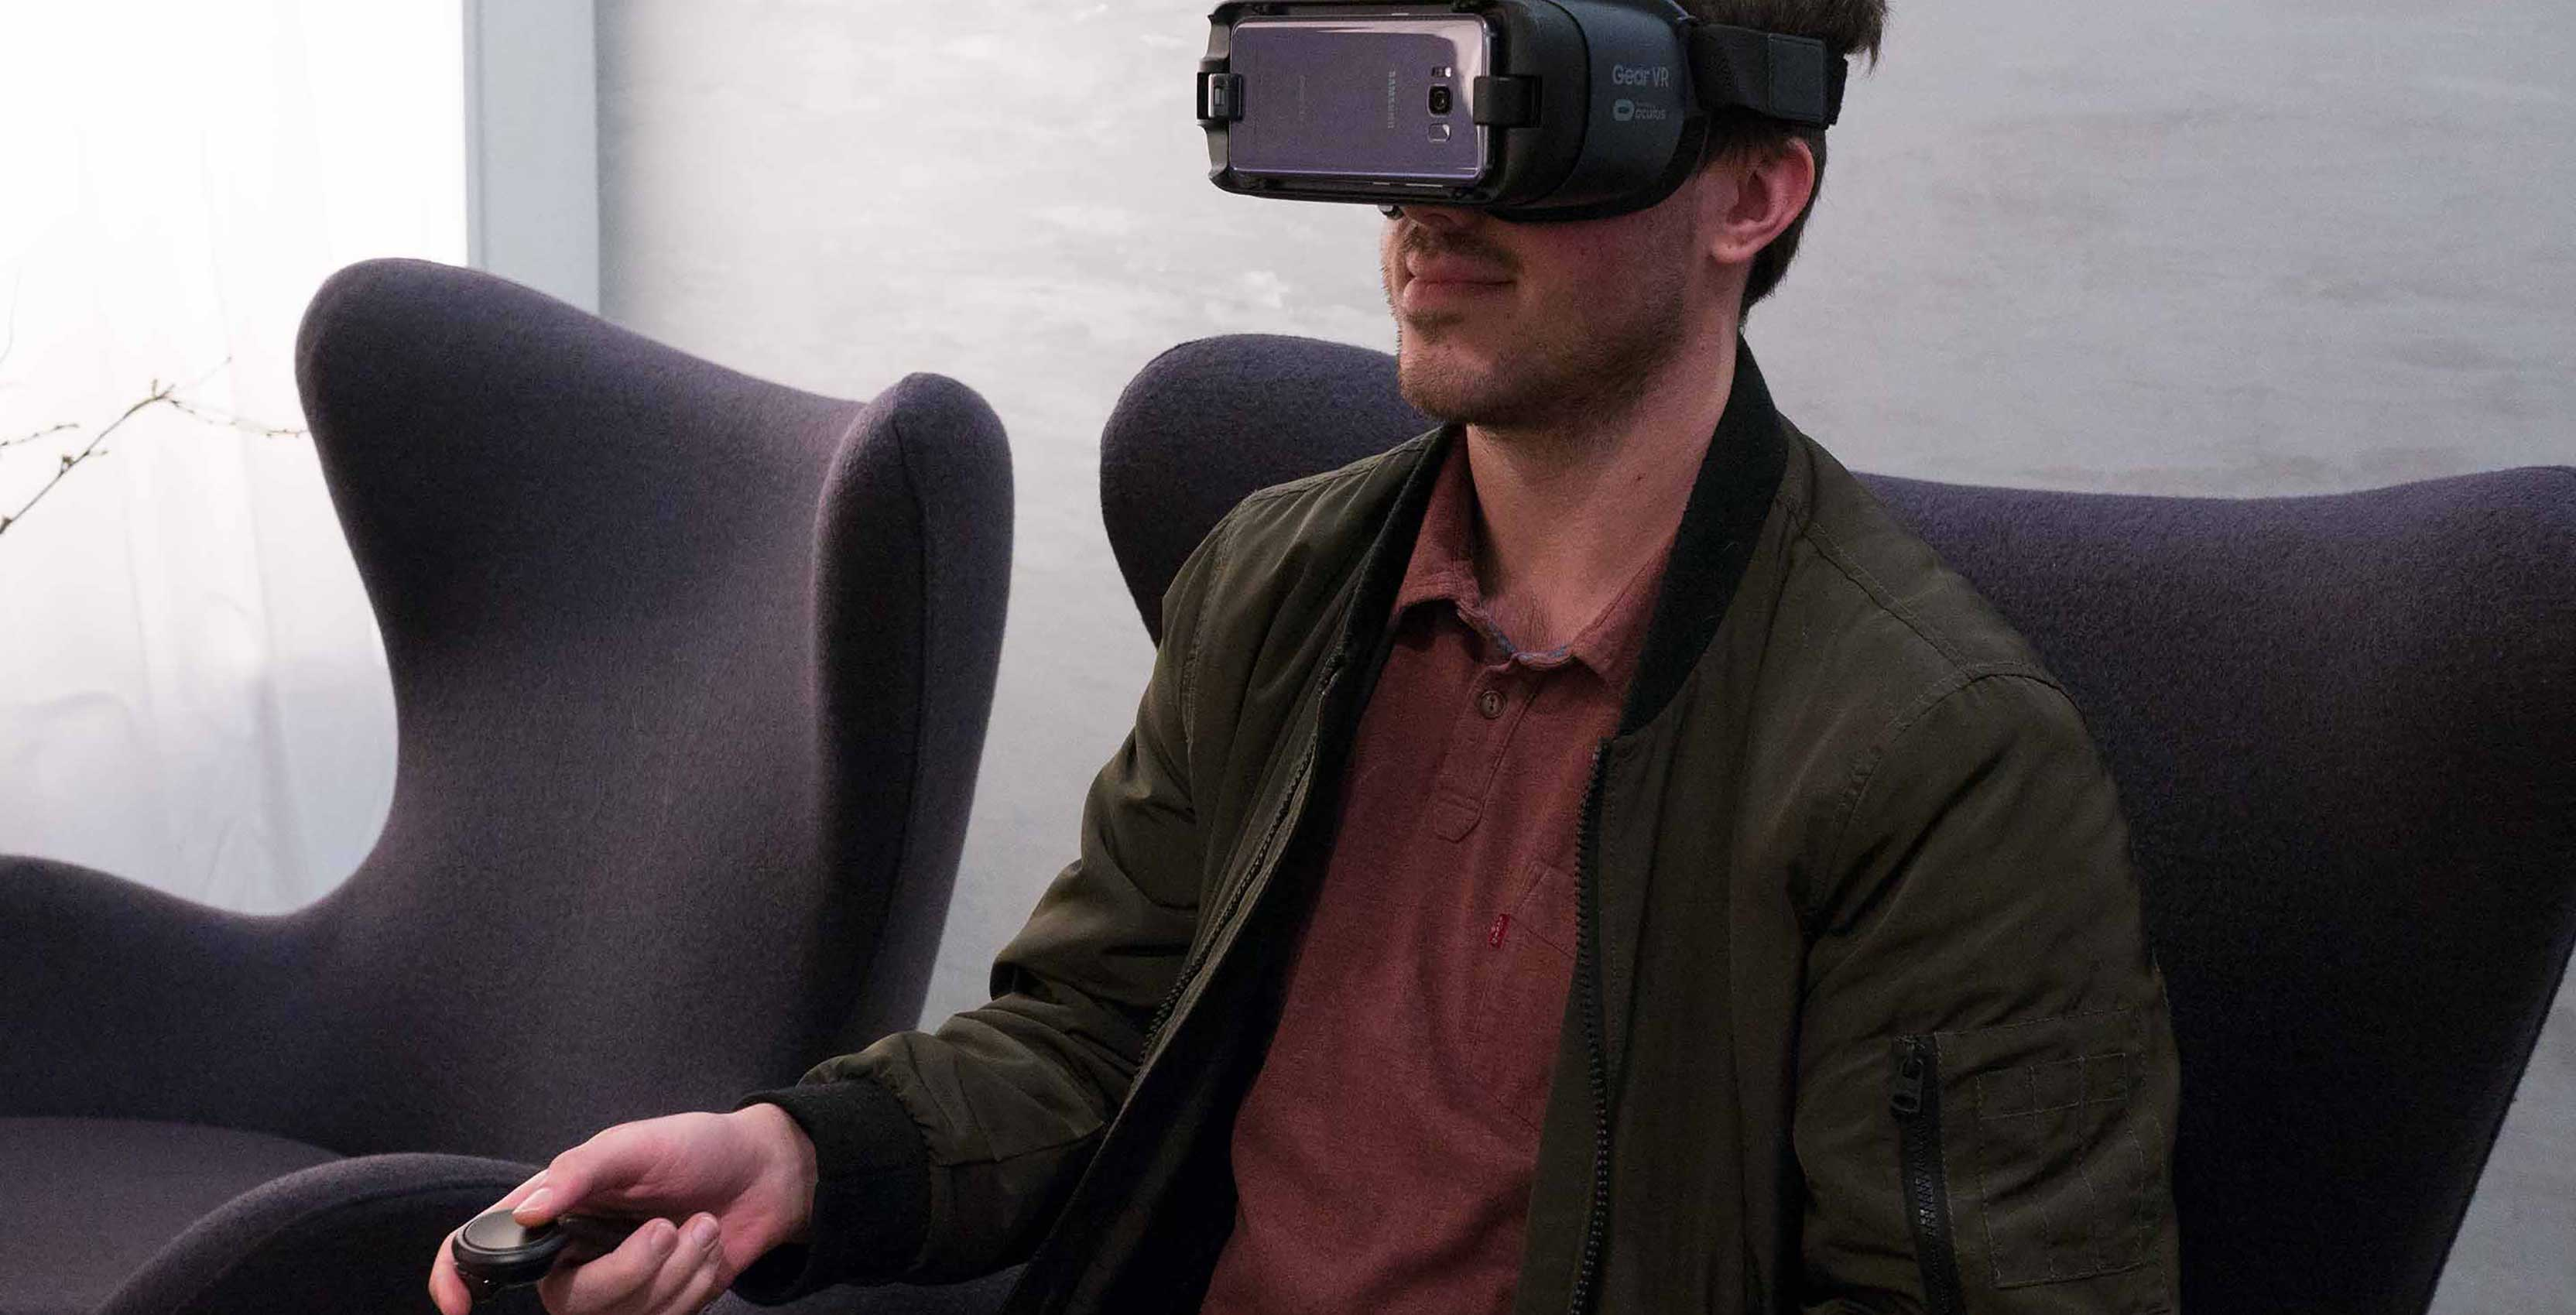 Man with VR headset watching content